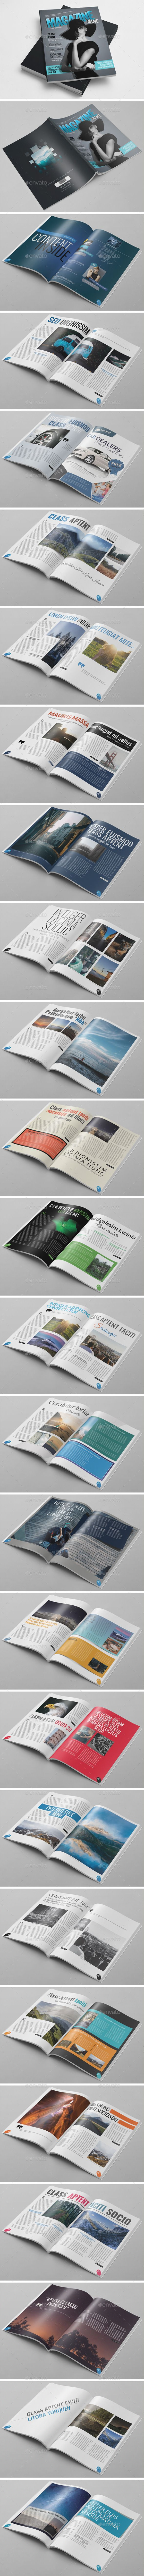 50 Pages Photoshop Magazine Template - Magazines Print Templates Download here: https://graphicriver.net/item/50-pages-photoshop-magazine-template/10786904?ref=classicdesignp